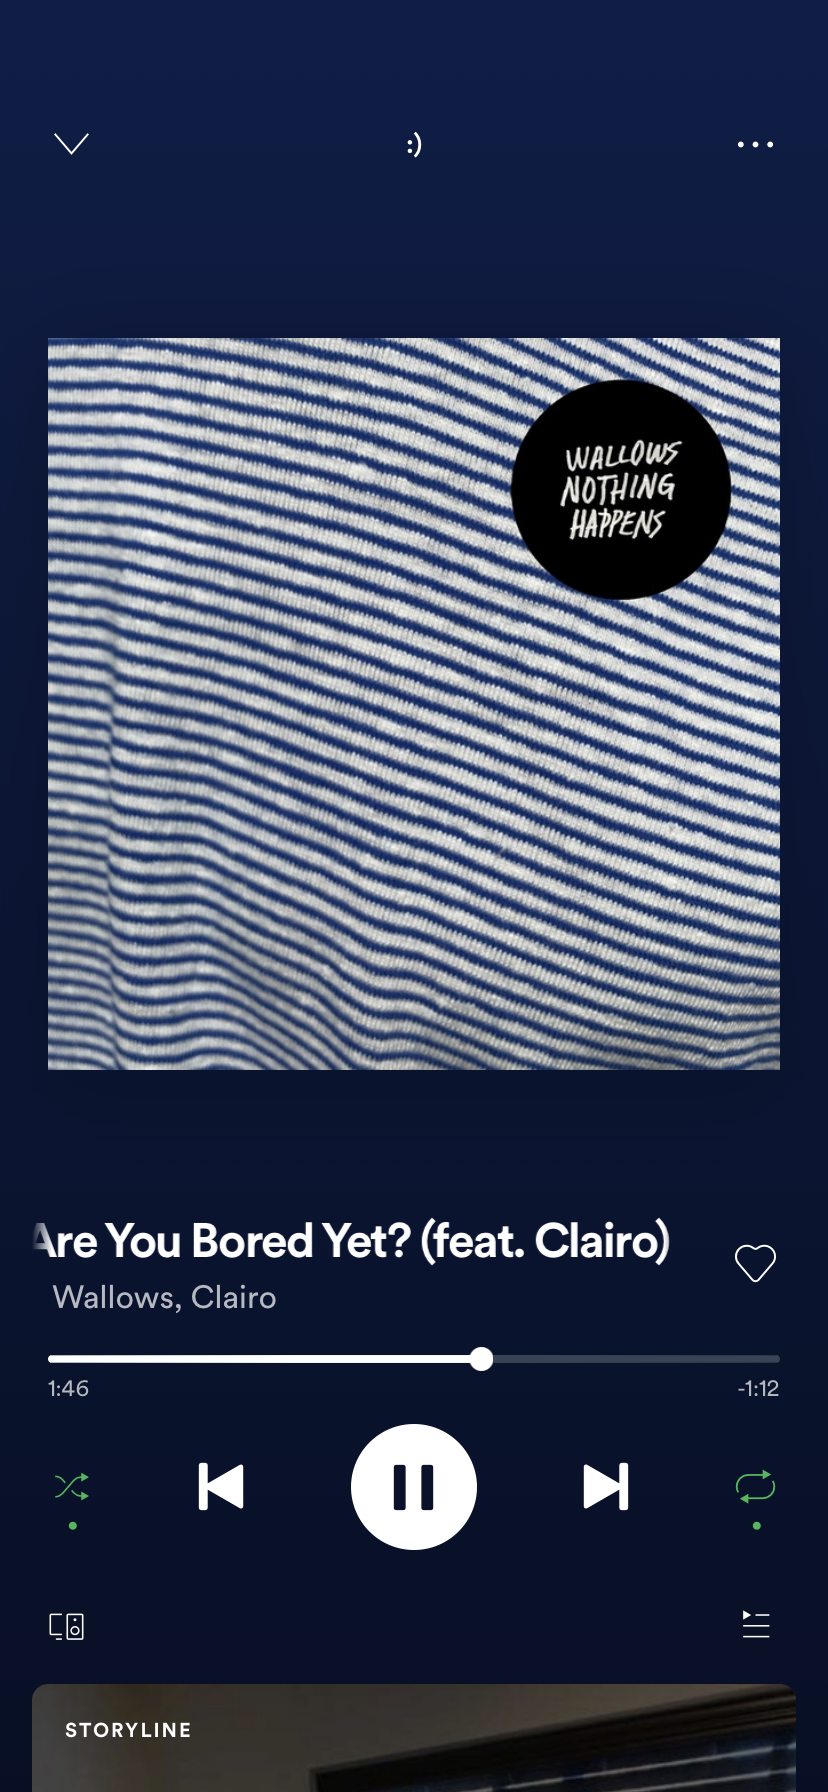 Are You Bored Yet Feat Clairo A Song By Wallows Clairo On Spotify Songs Spotify Music Are You Bored